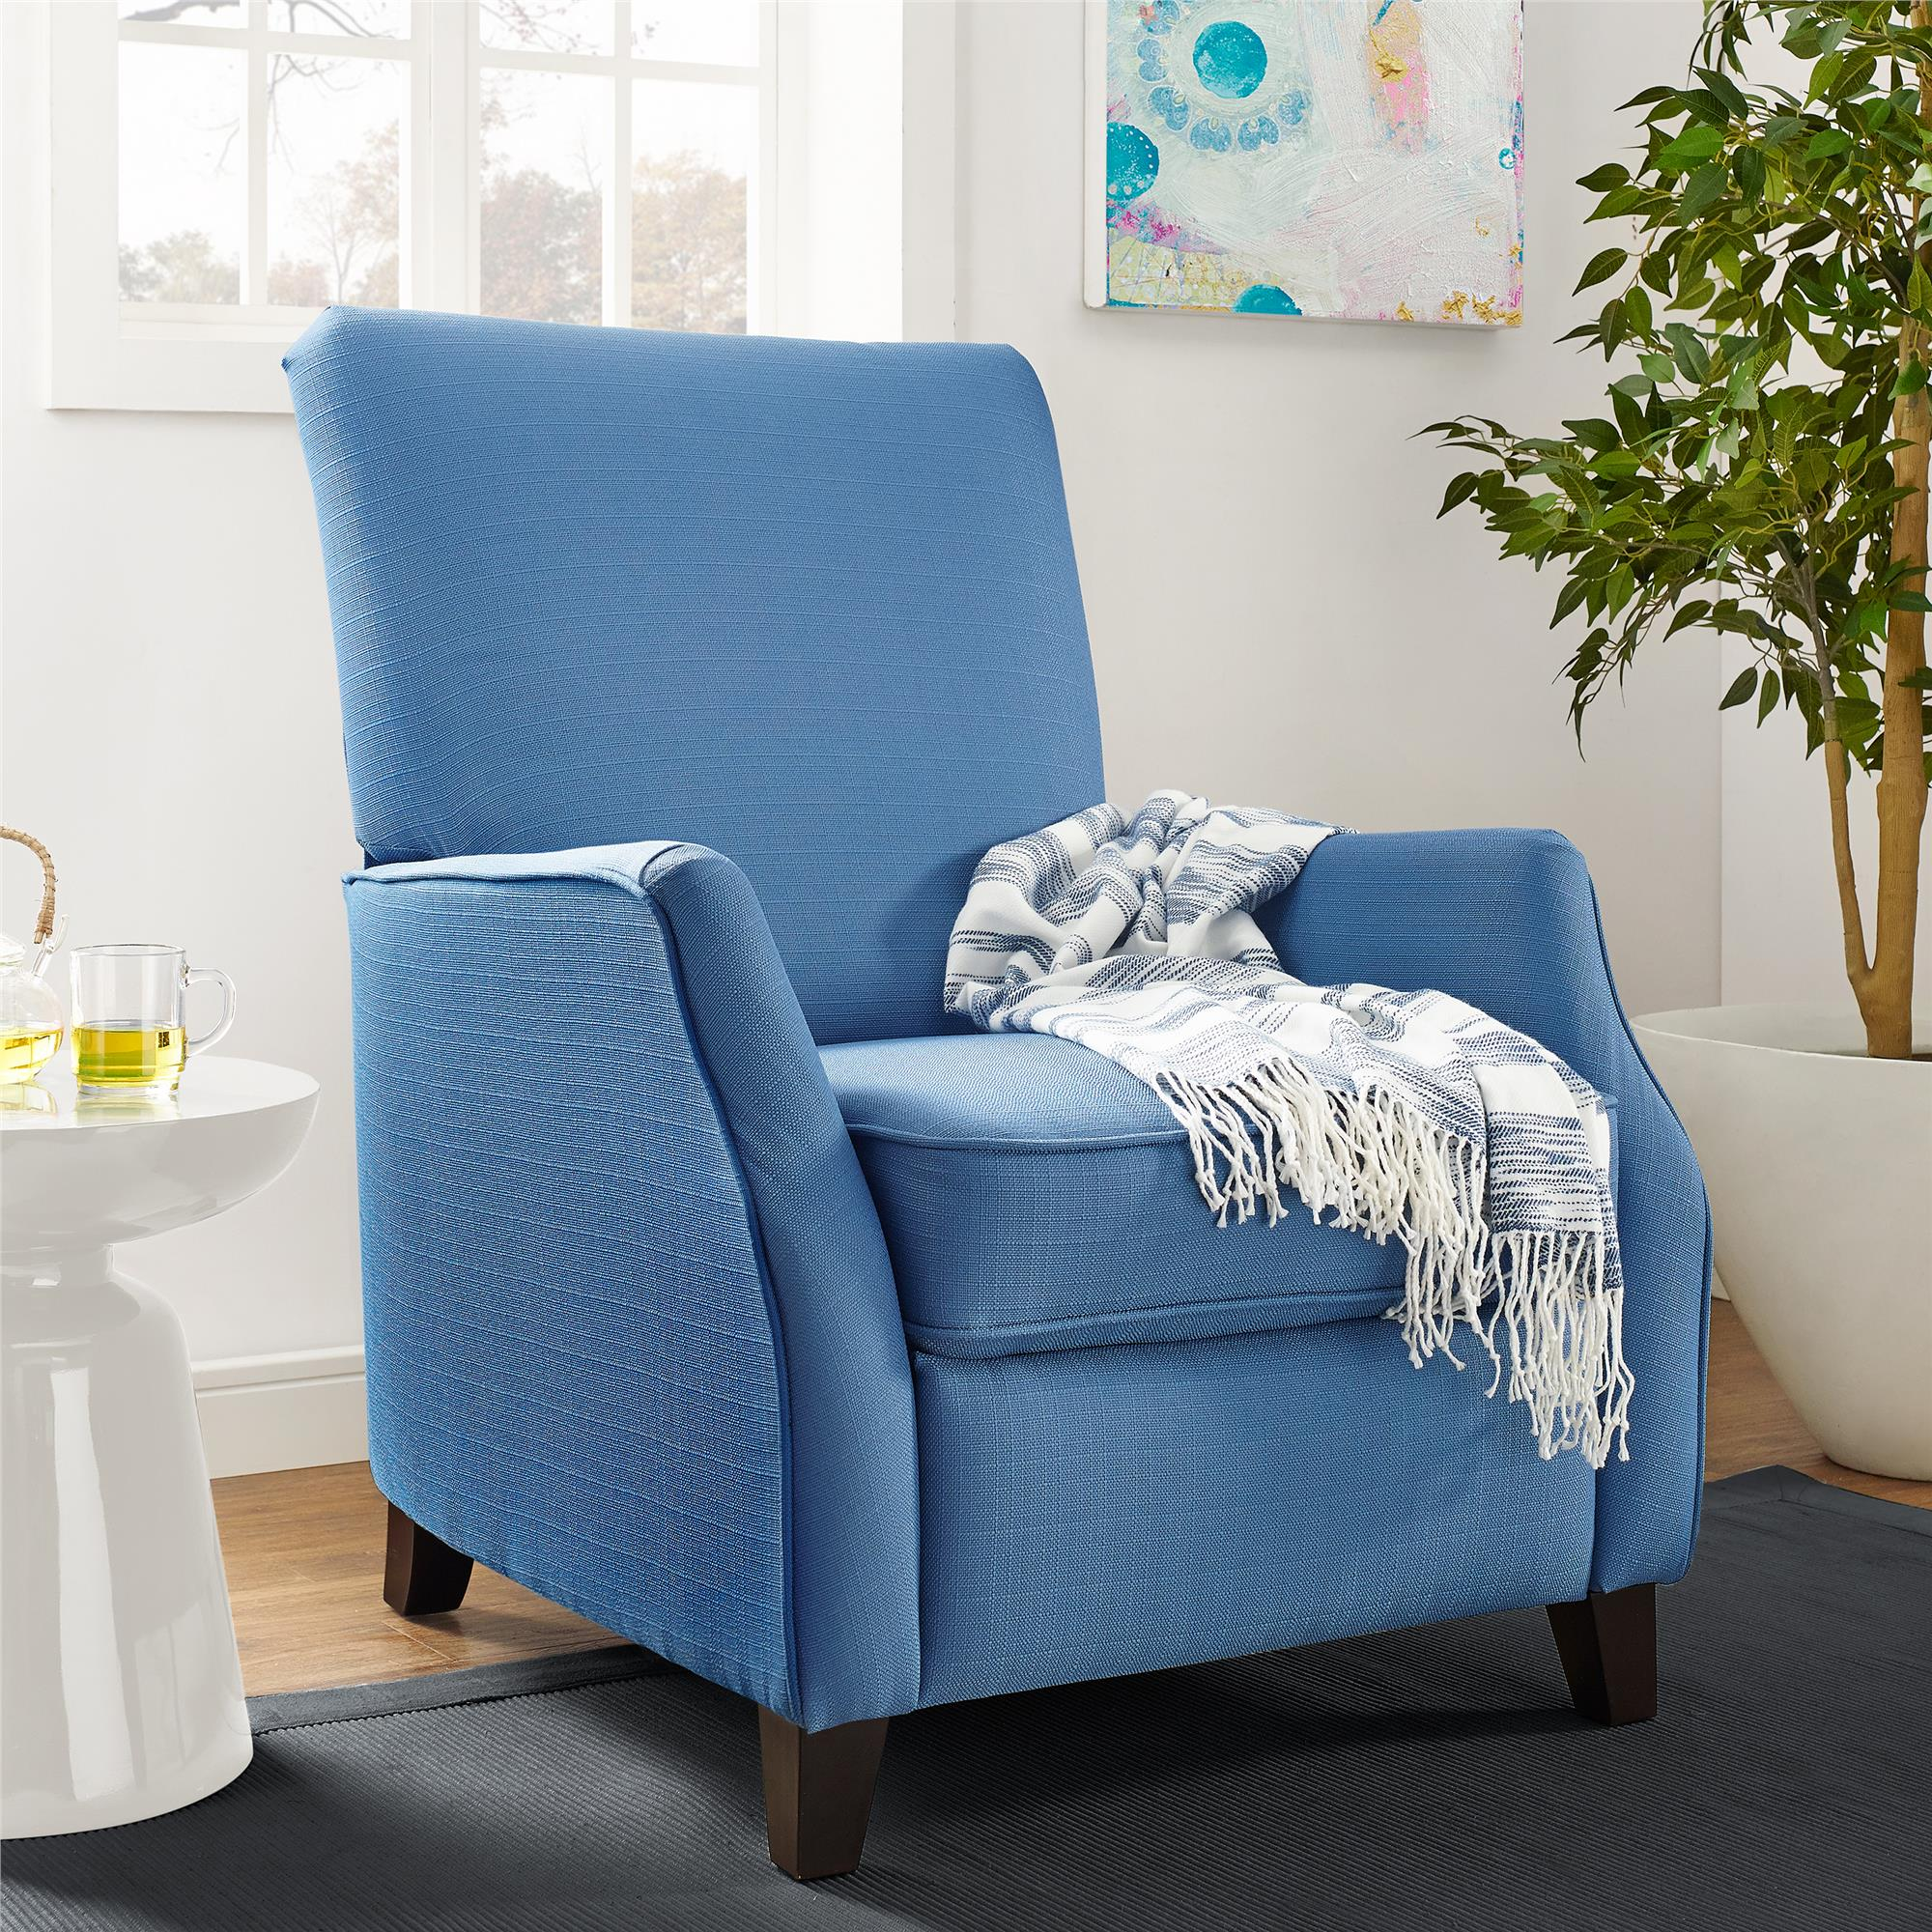 Dorel Living Noa Pushback Recliner, Blue